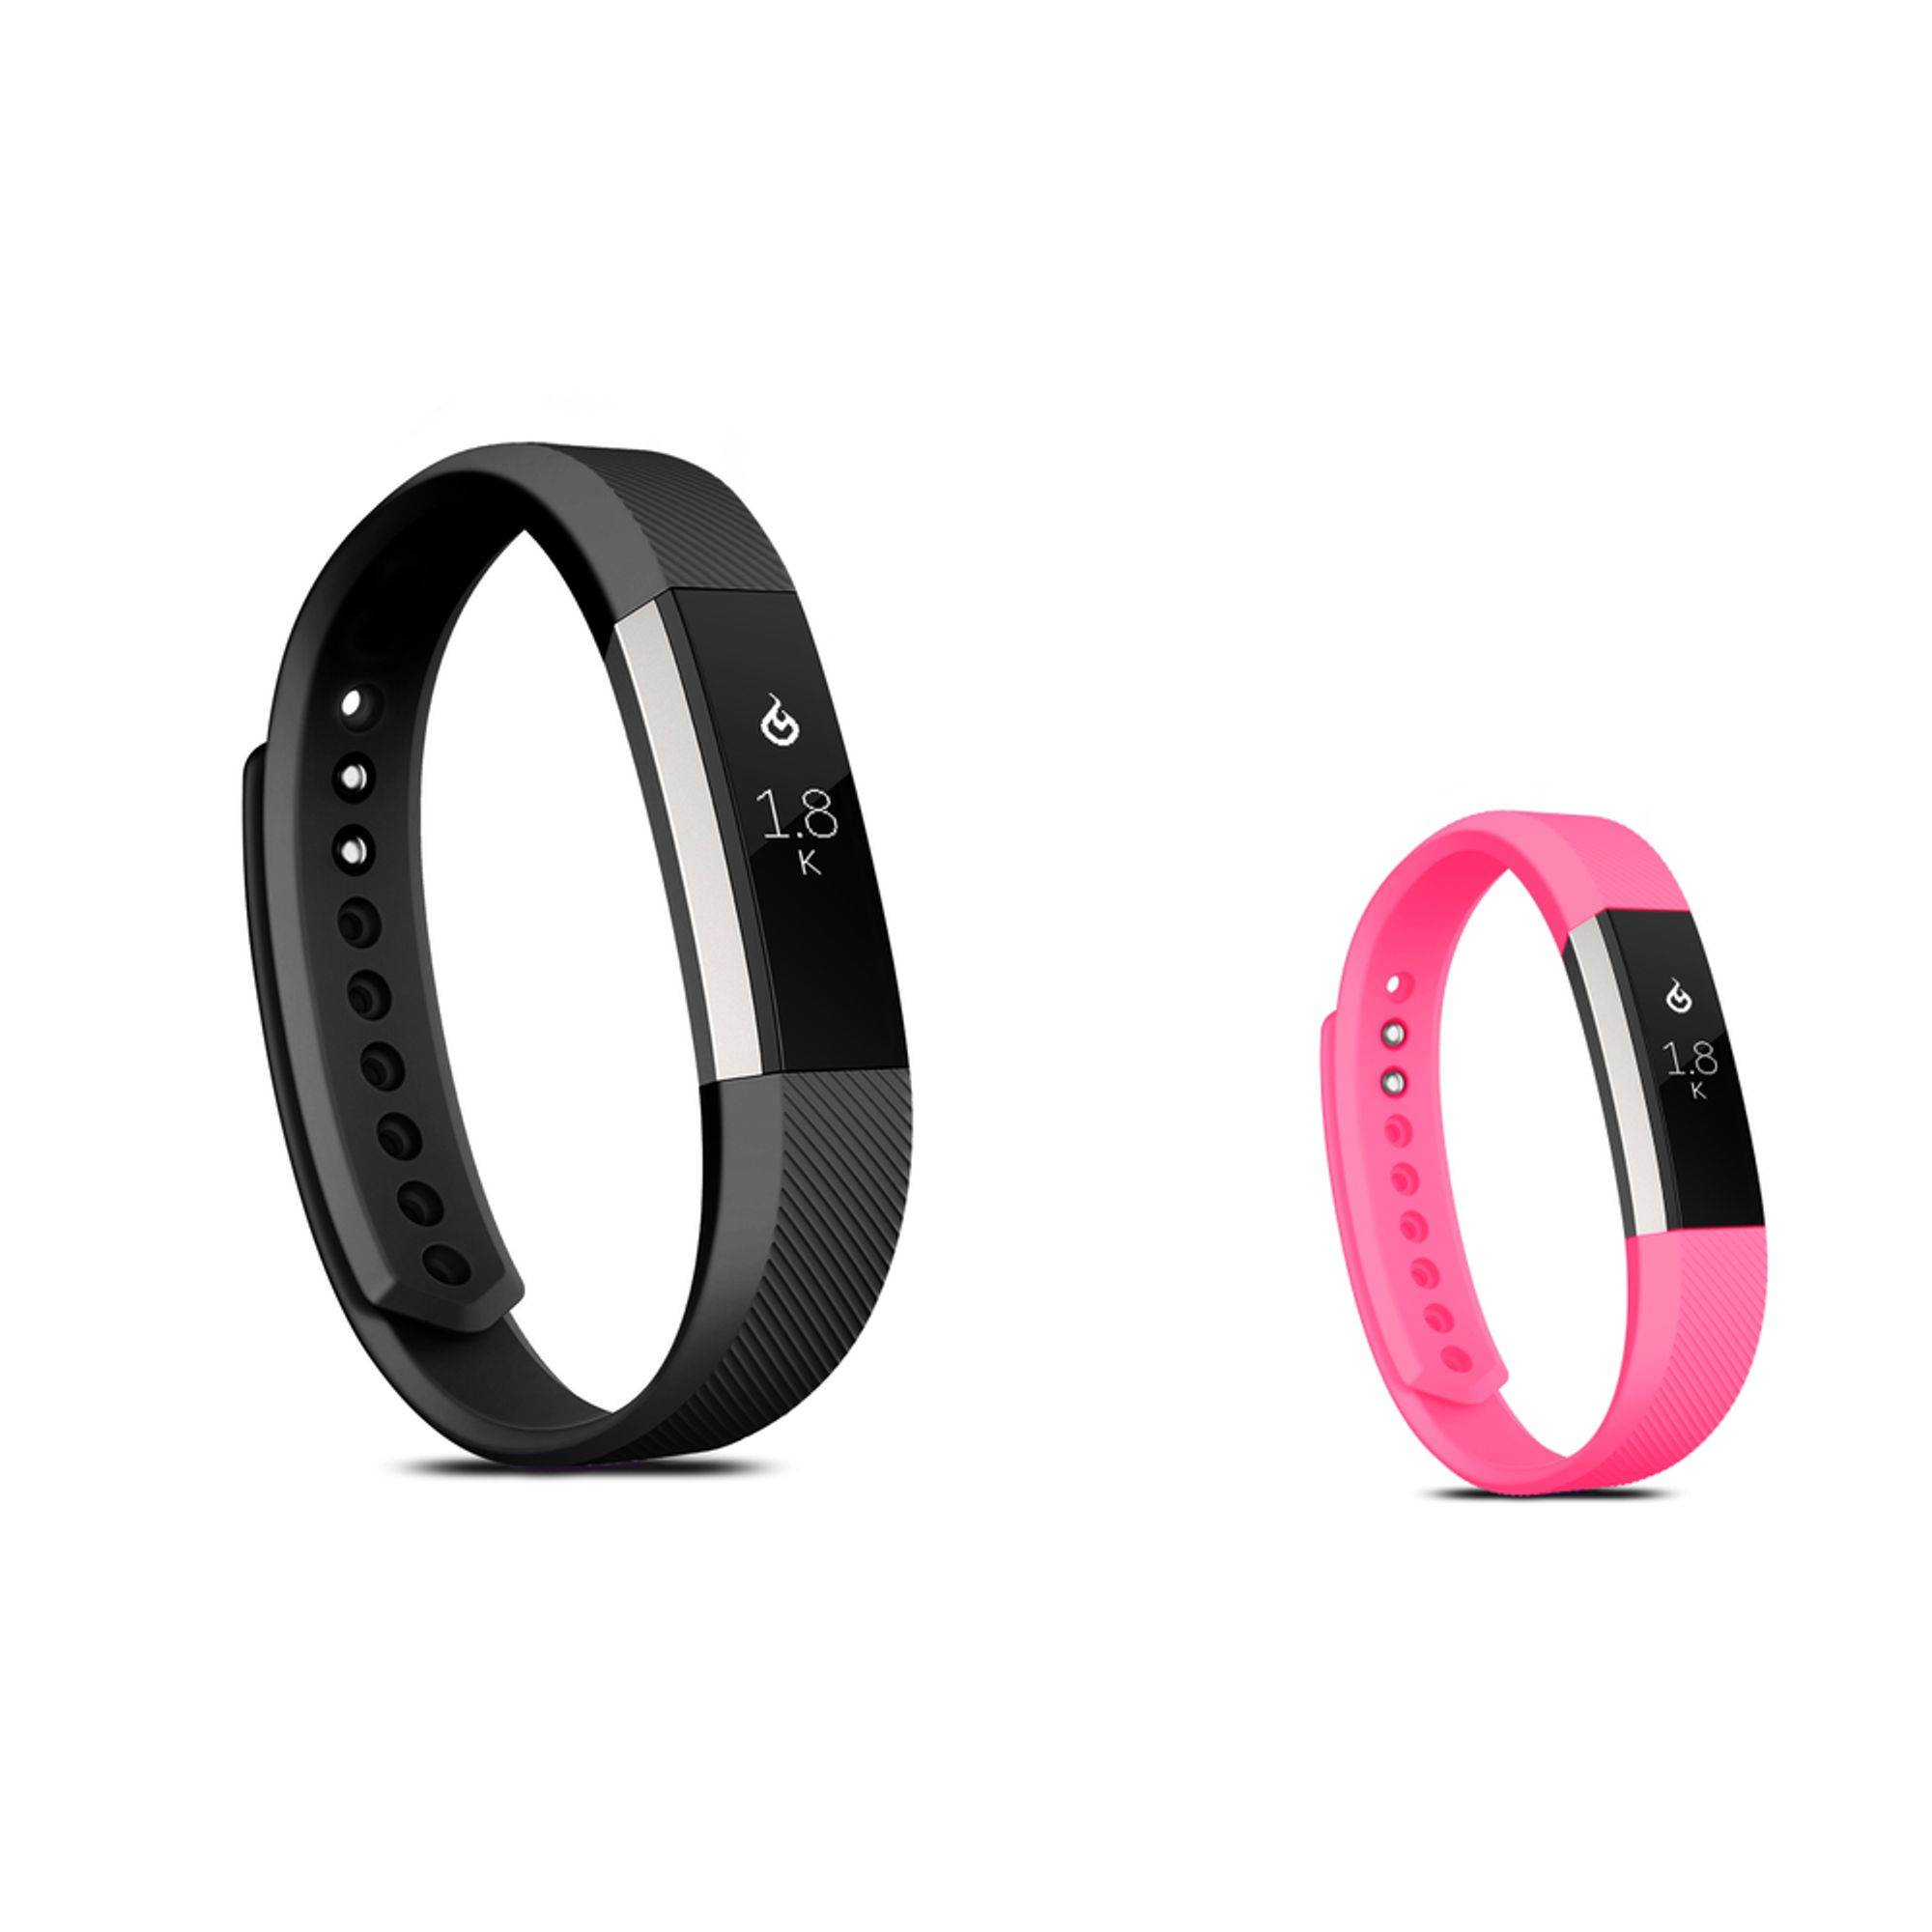 Zodaca Soft TPU Rubber Adjustable Wristbands Watch Band Strap For Fitbit Alta HR / Alta SMALL Size - Black + Hot Pink